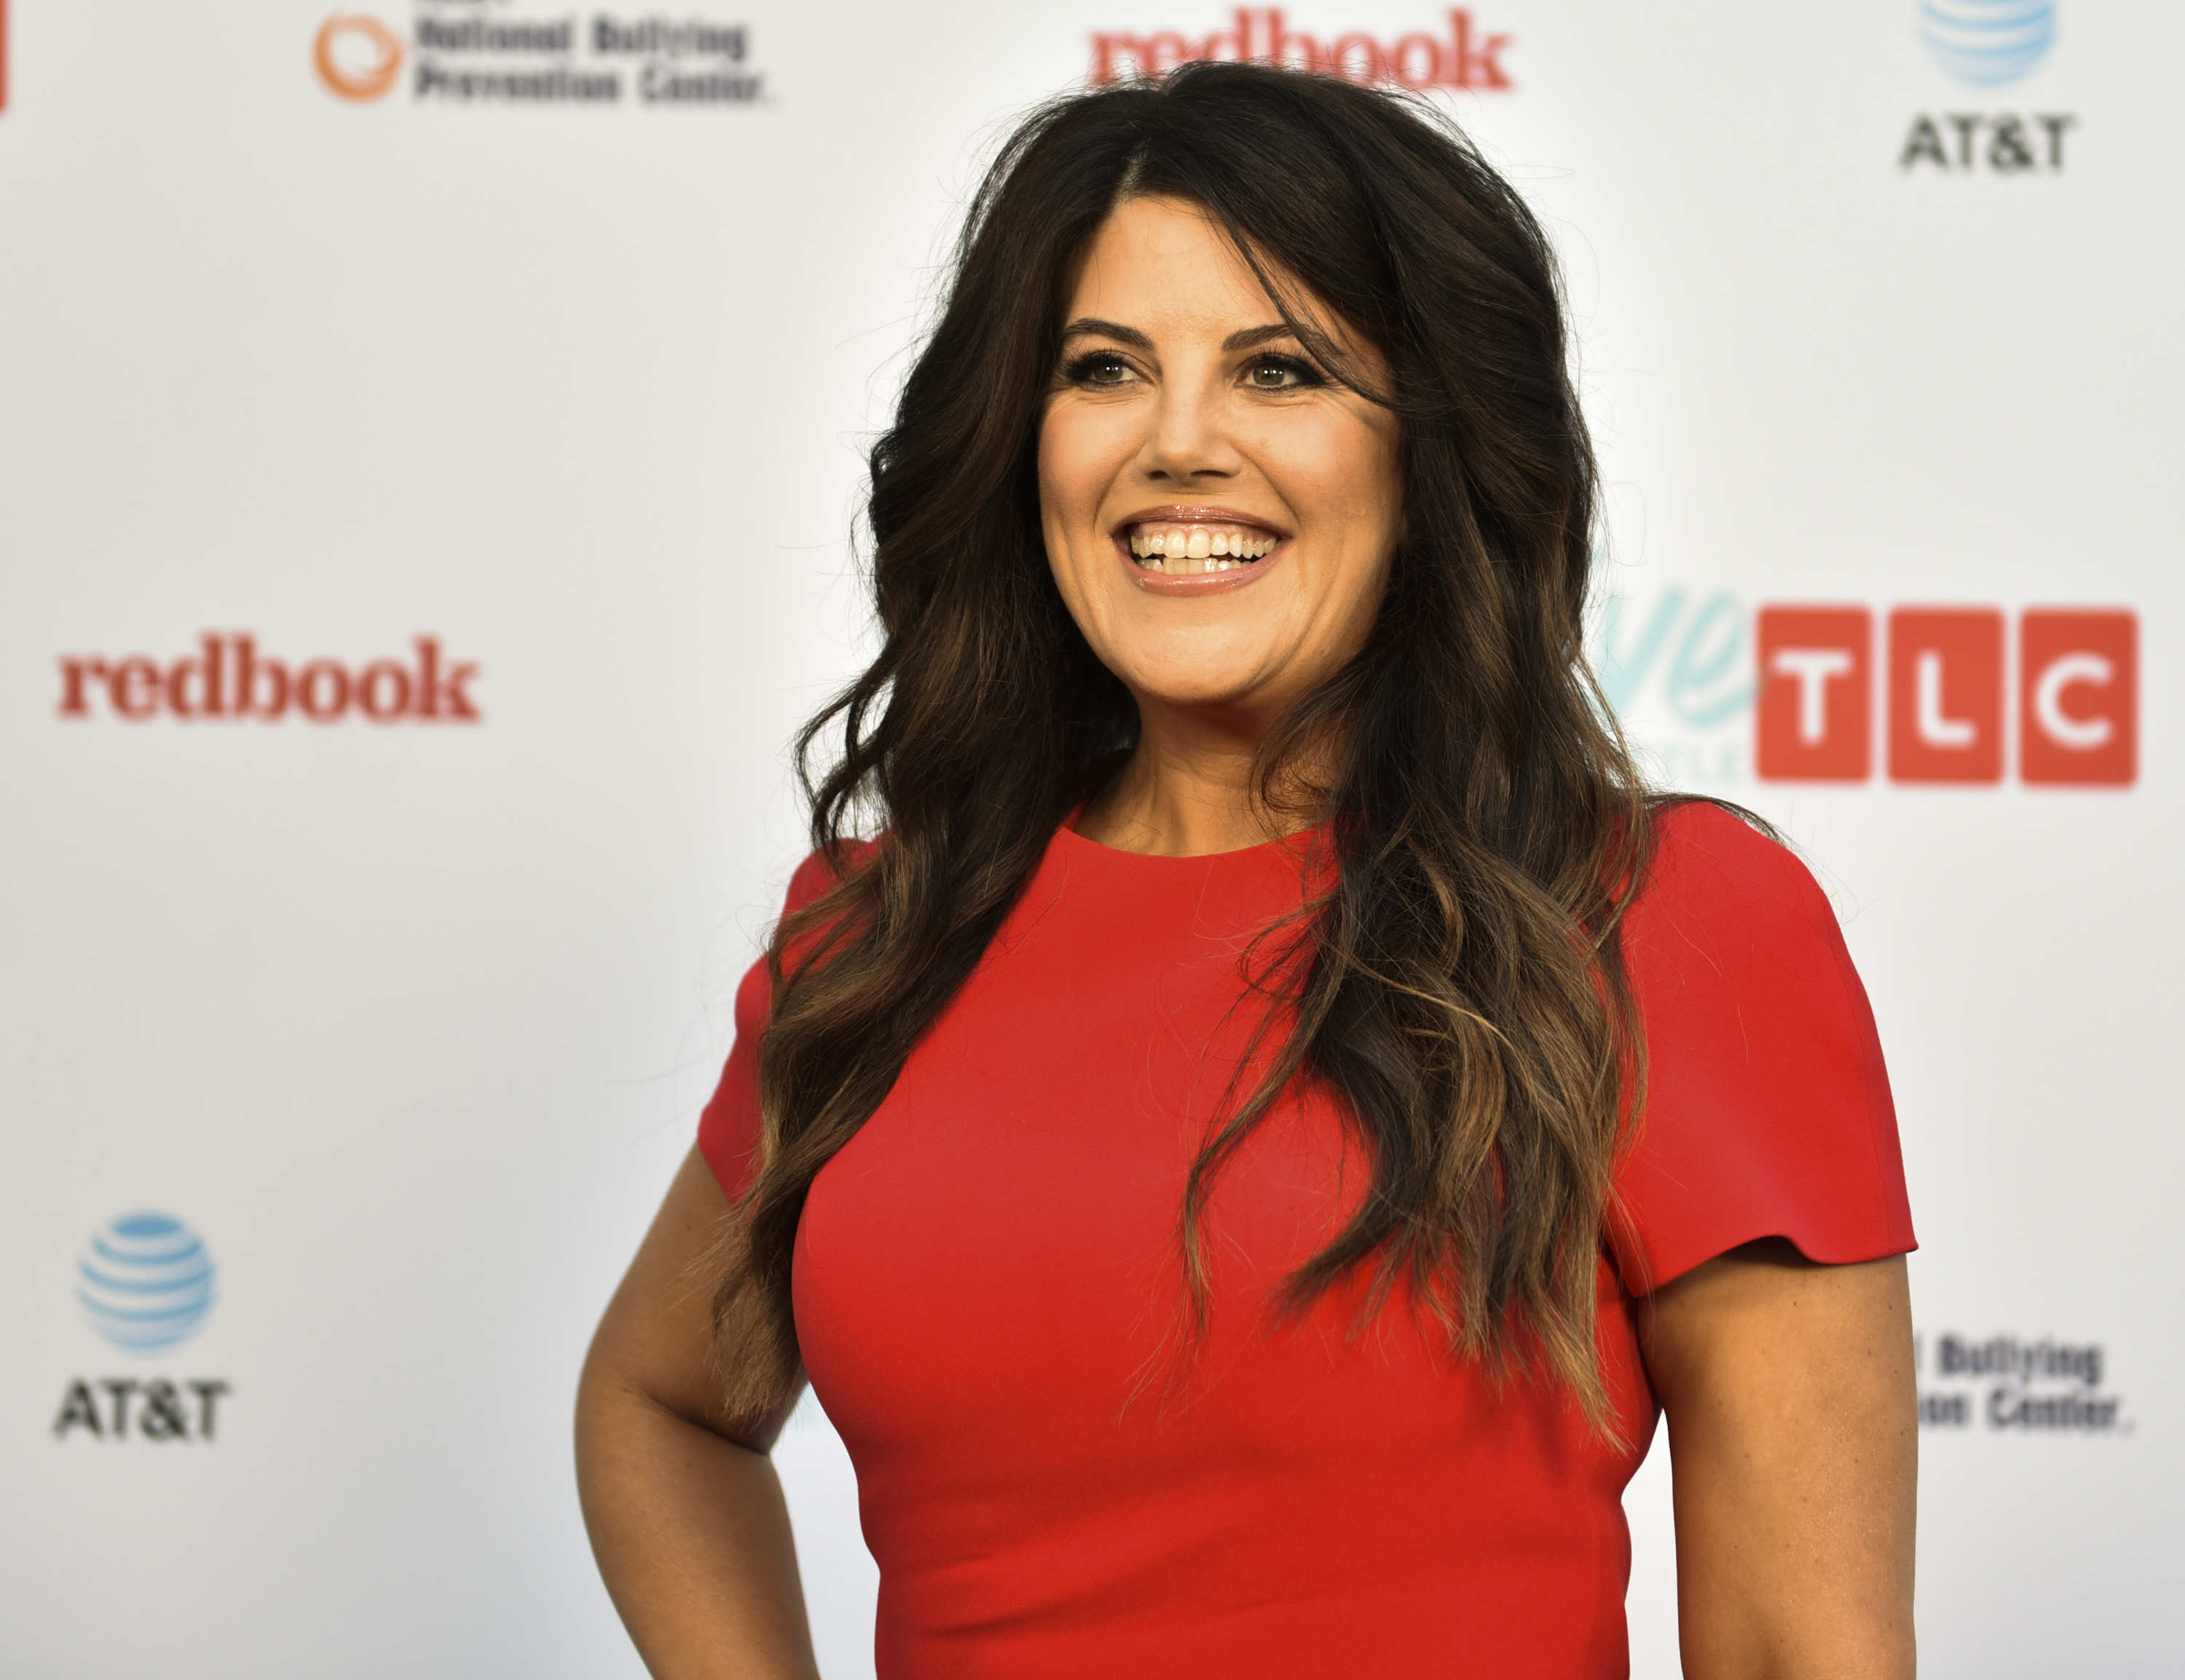 Monica Lewinsky attends TLC's Give a Little Awards at NeueHouse Hollywood on September 27, 2017 in Los Angeles, California.